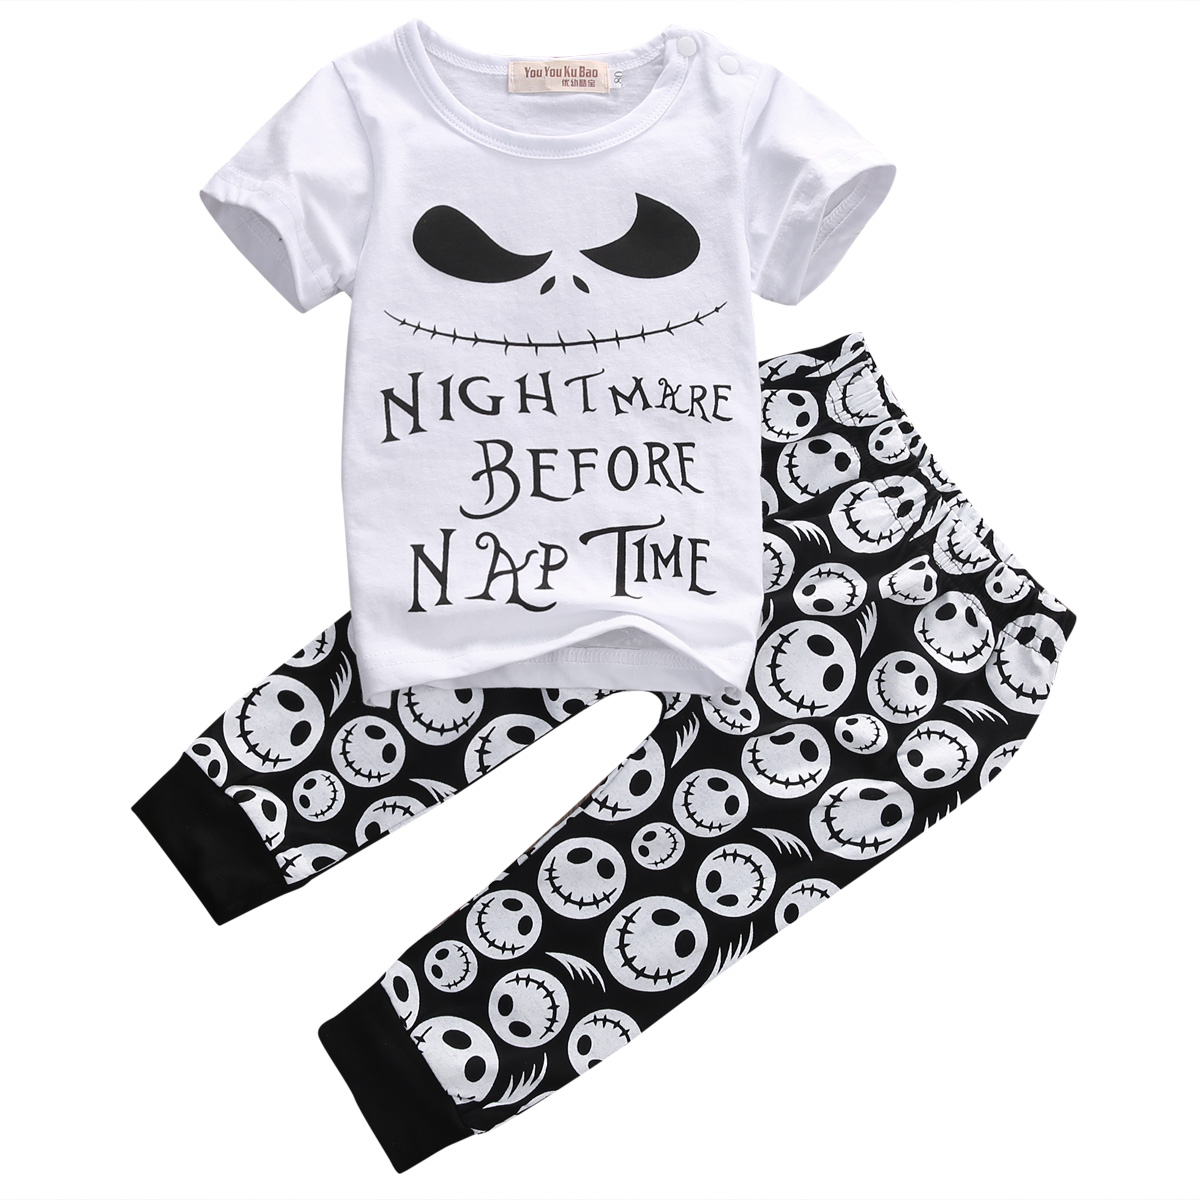 2PCSNew-Cartoon-Cotton-Halloween-Letter-Clothing-Set-Baby-Boy-Children-Kids-T-shirtPants-Toddler-boy-summer-Outfits-Clothes-4